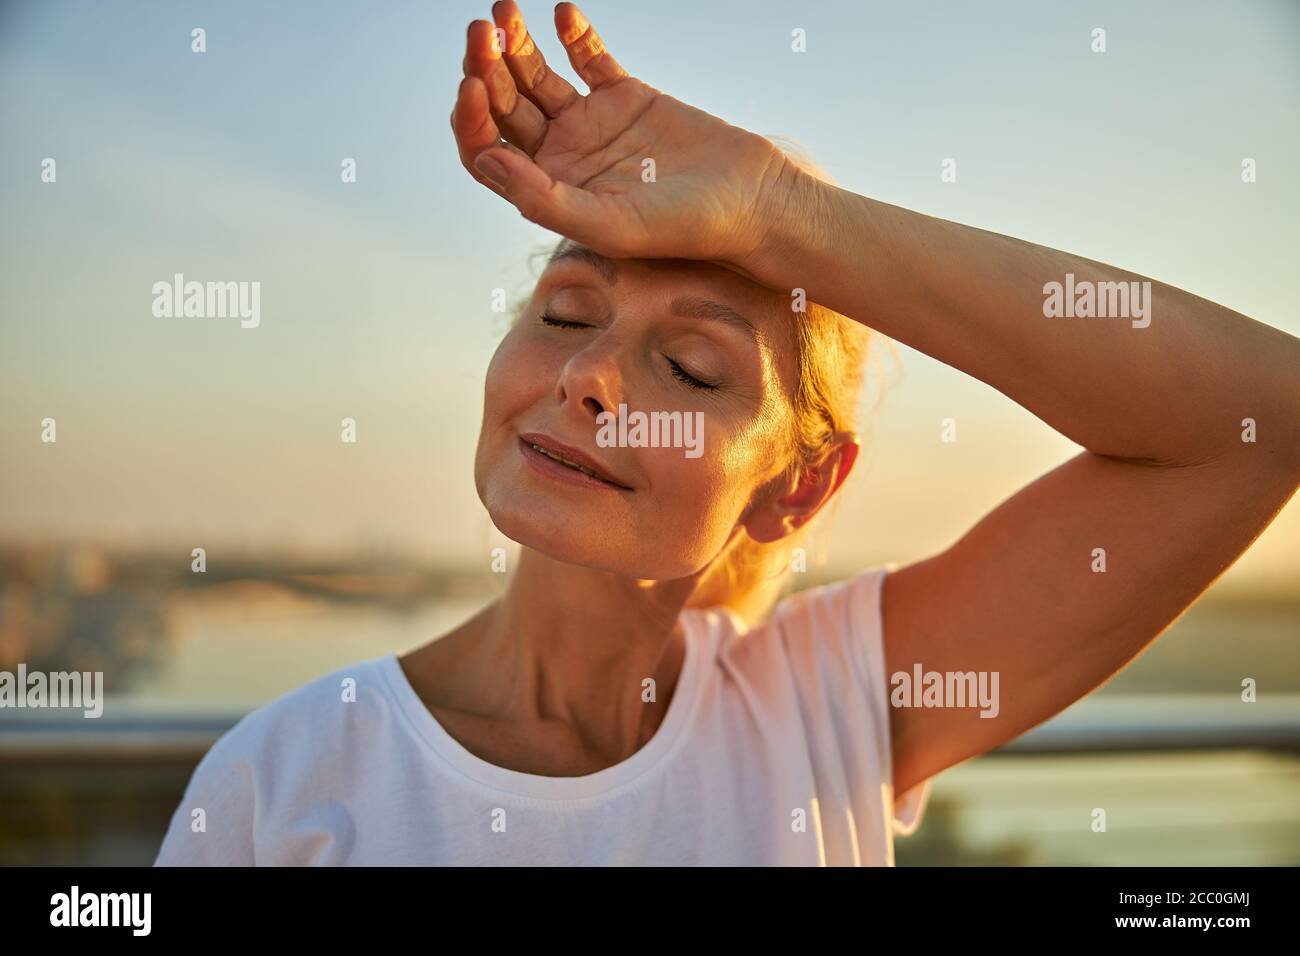 Charming woman placing hand on her forehead Stock Photo